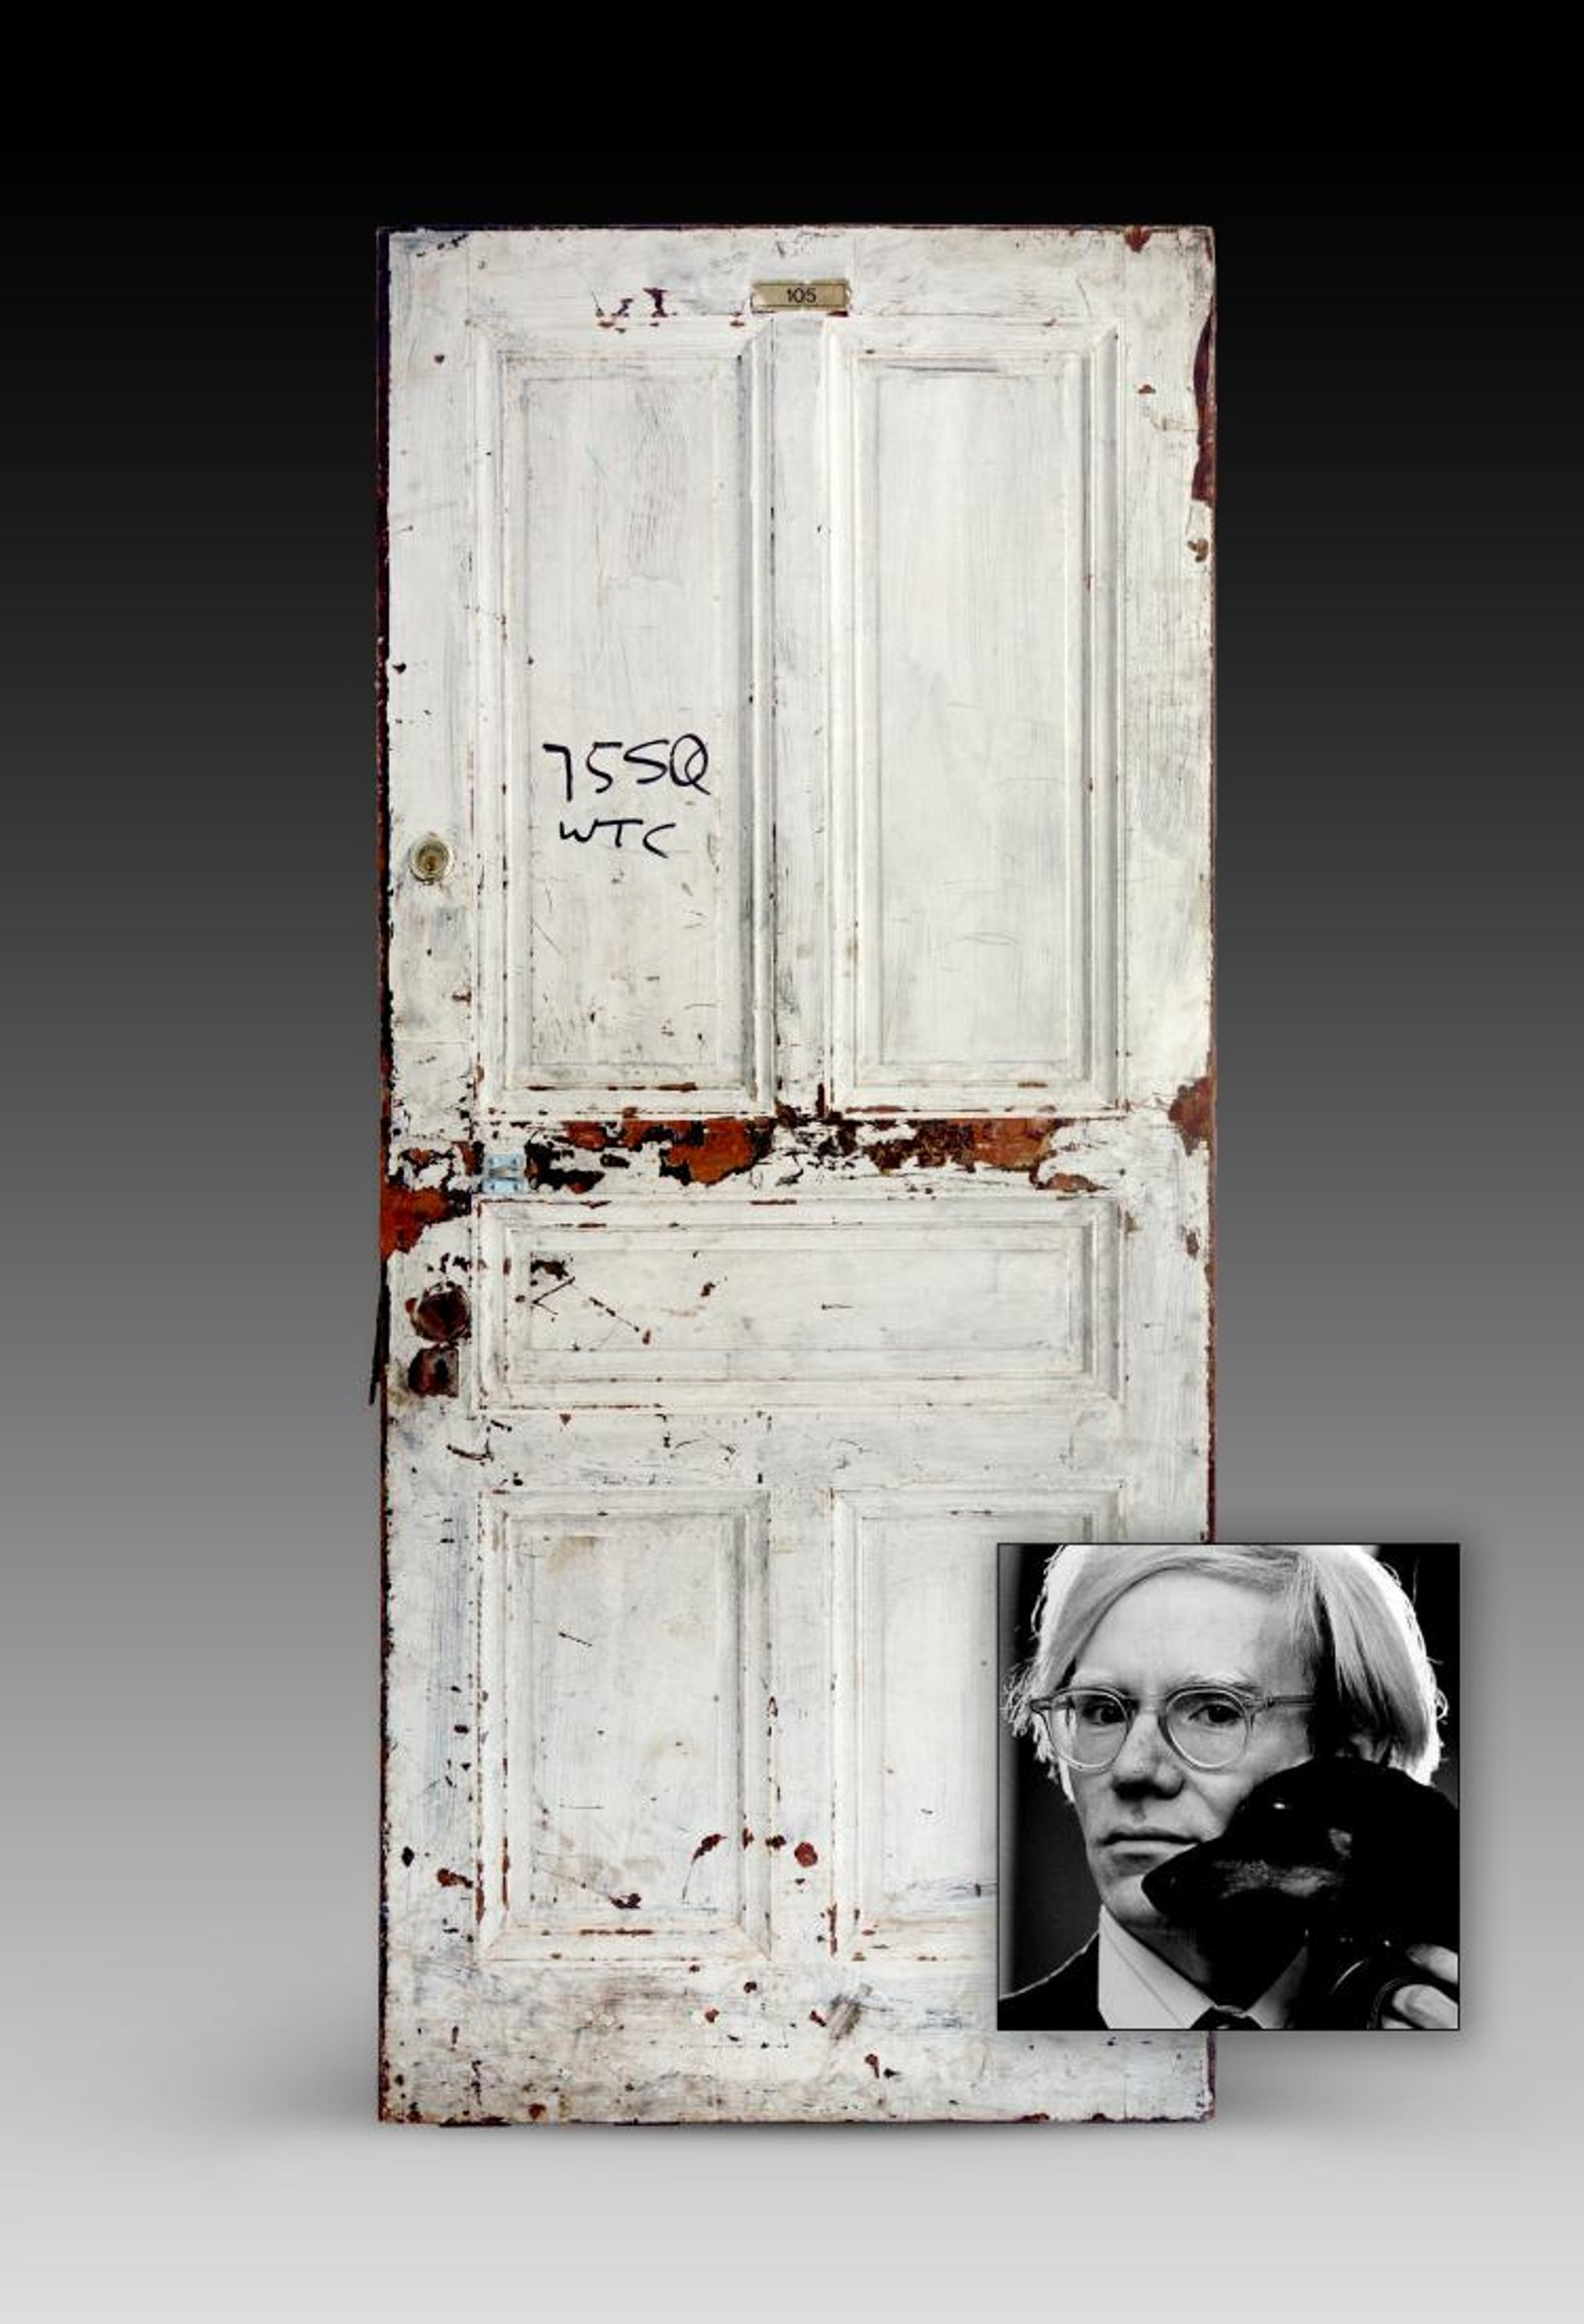 Warhol and Pollock's Chelsea Hotel doors are up for sale